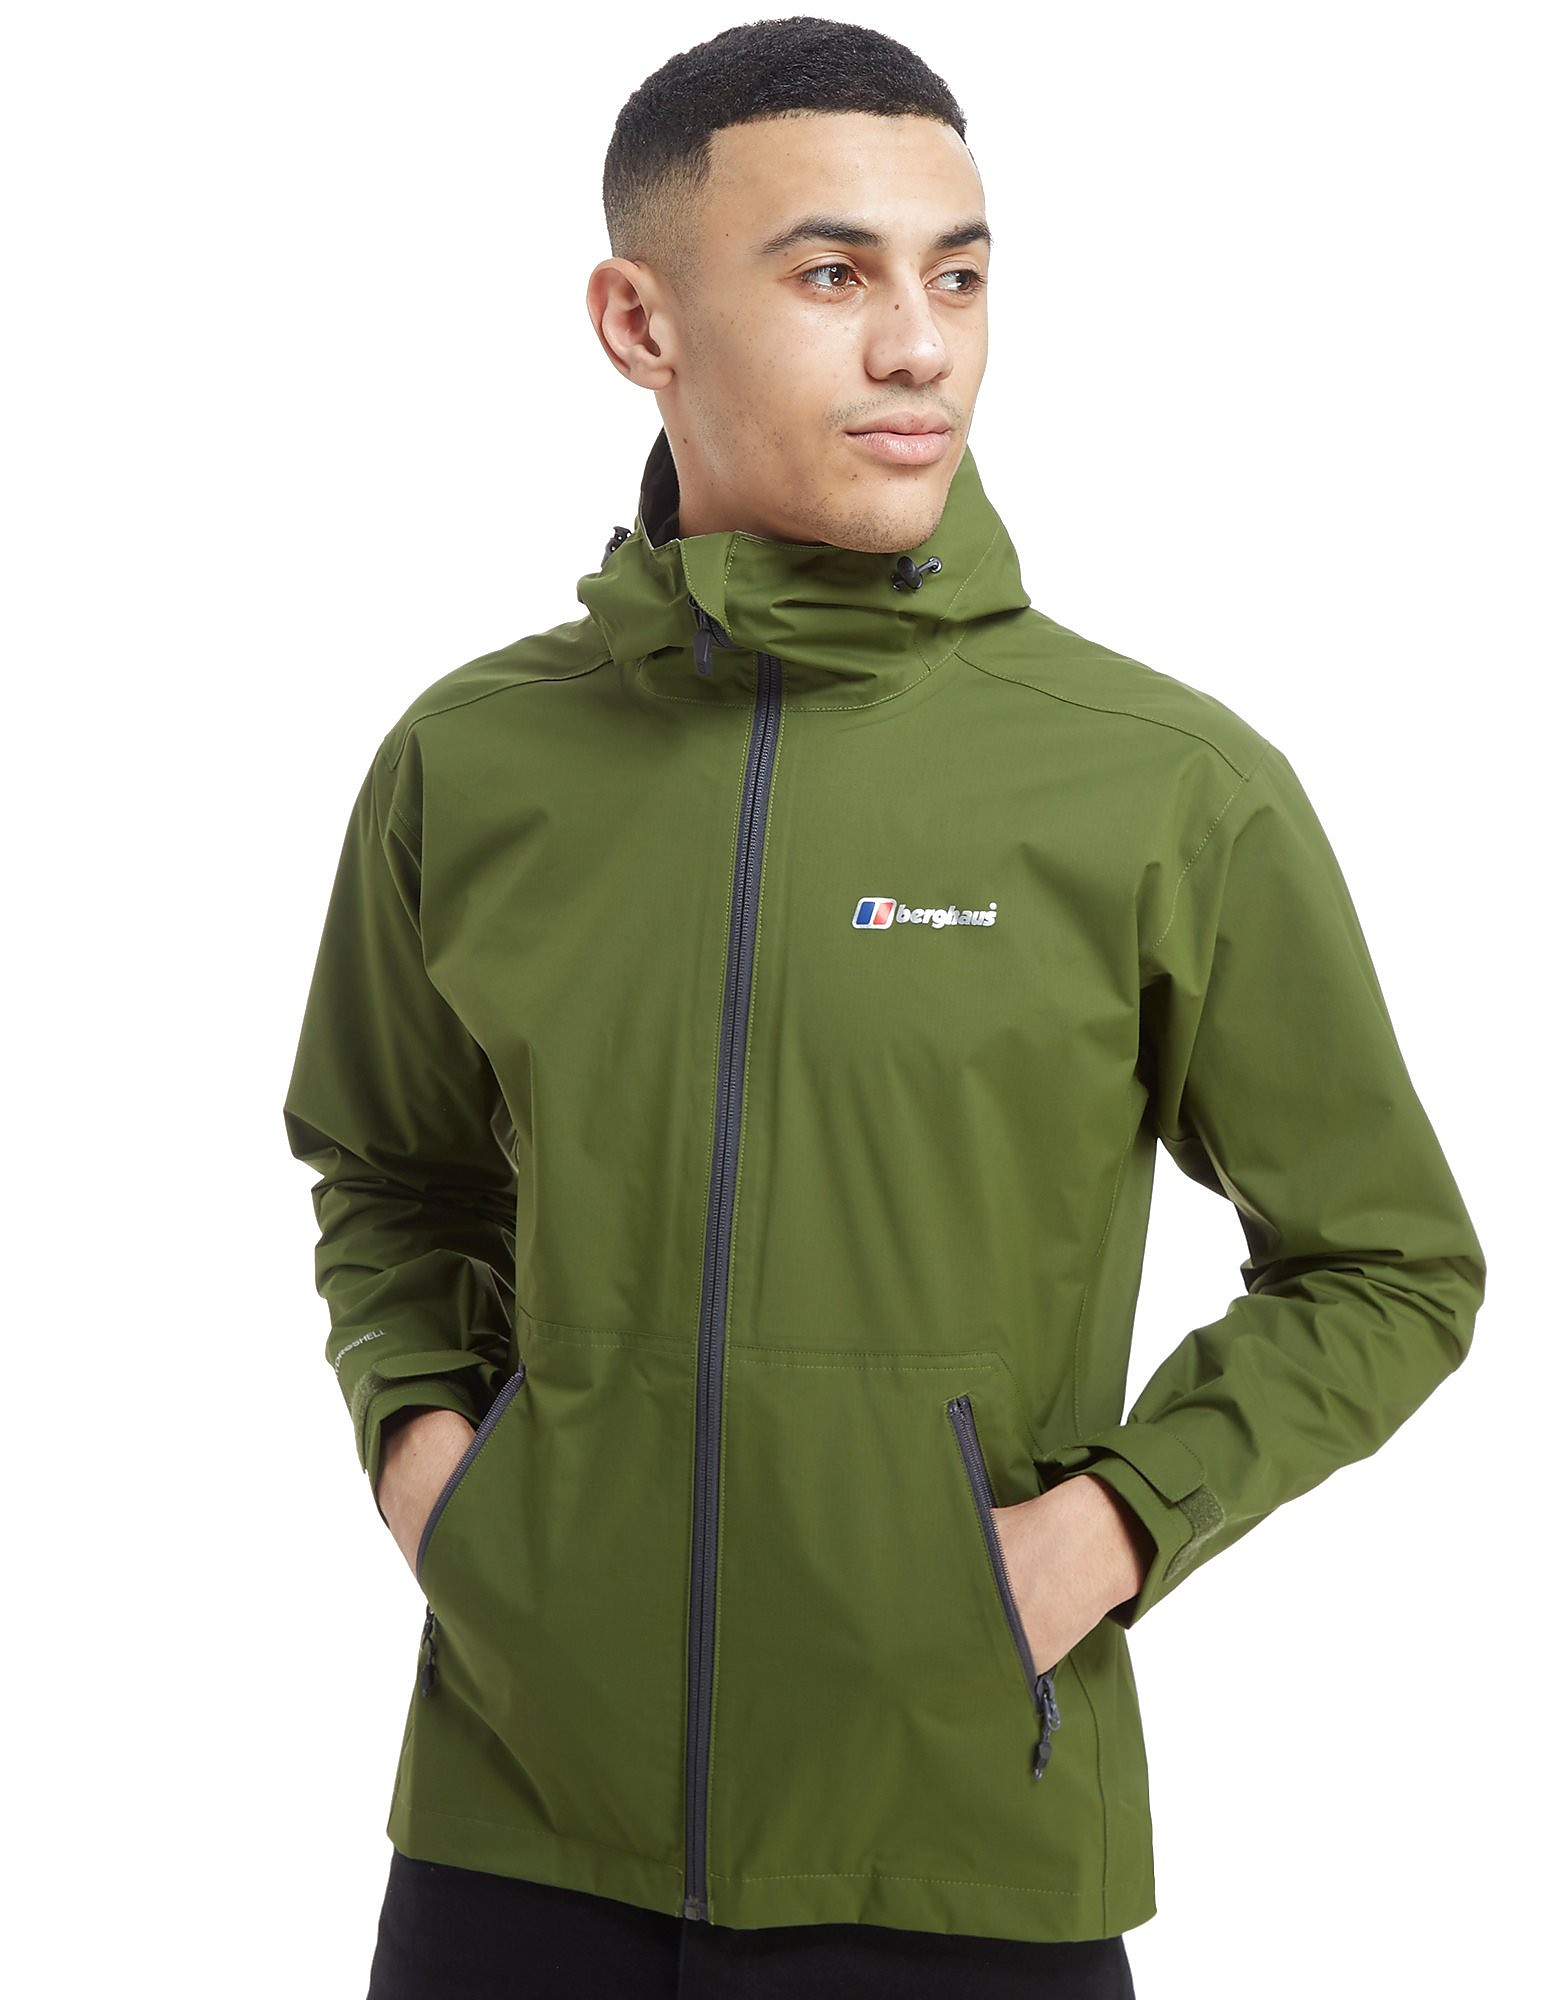 Berghaus Stormcloud Full Zip Jacket